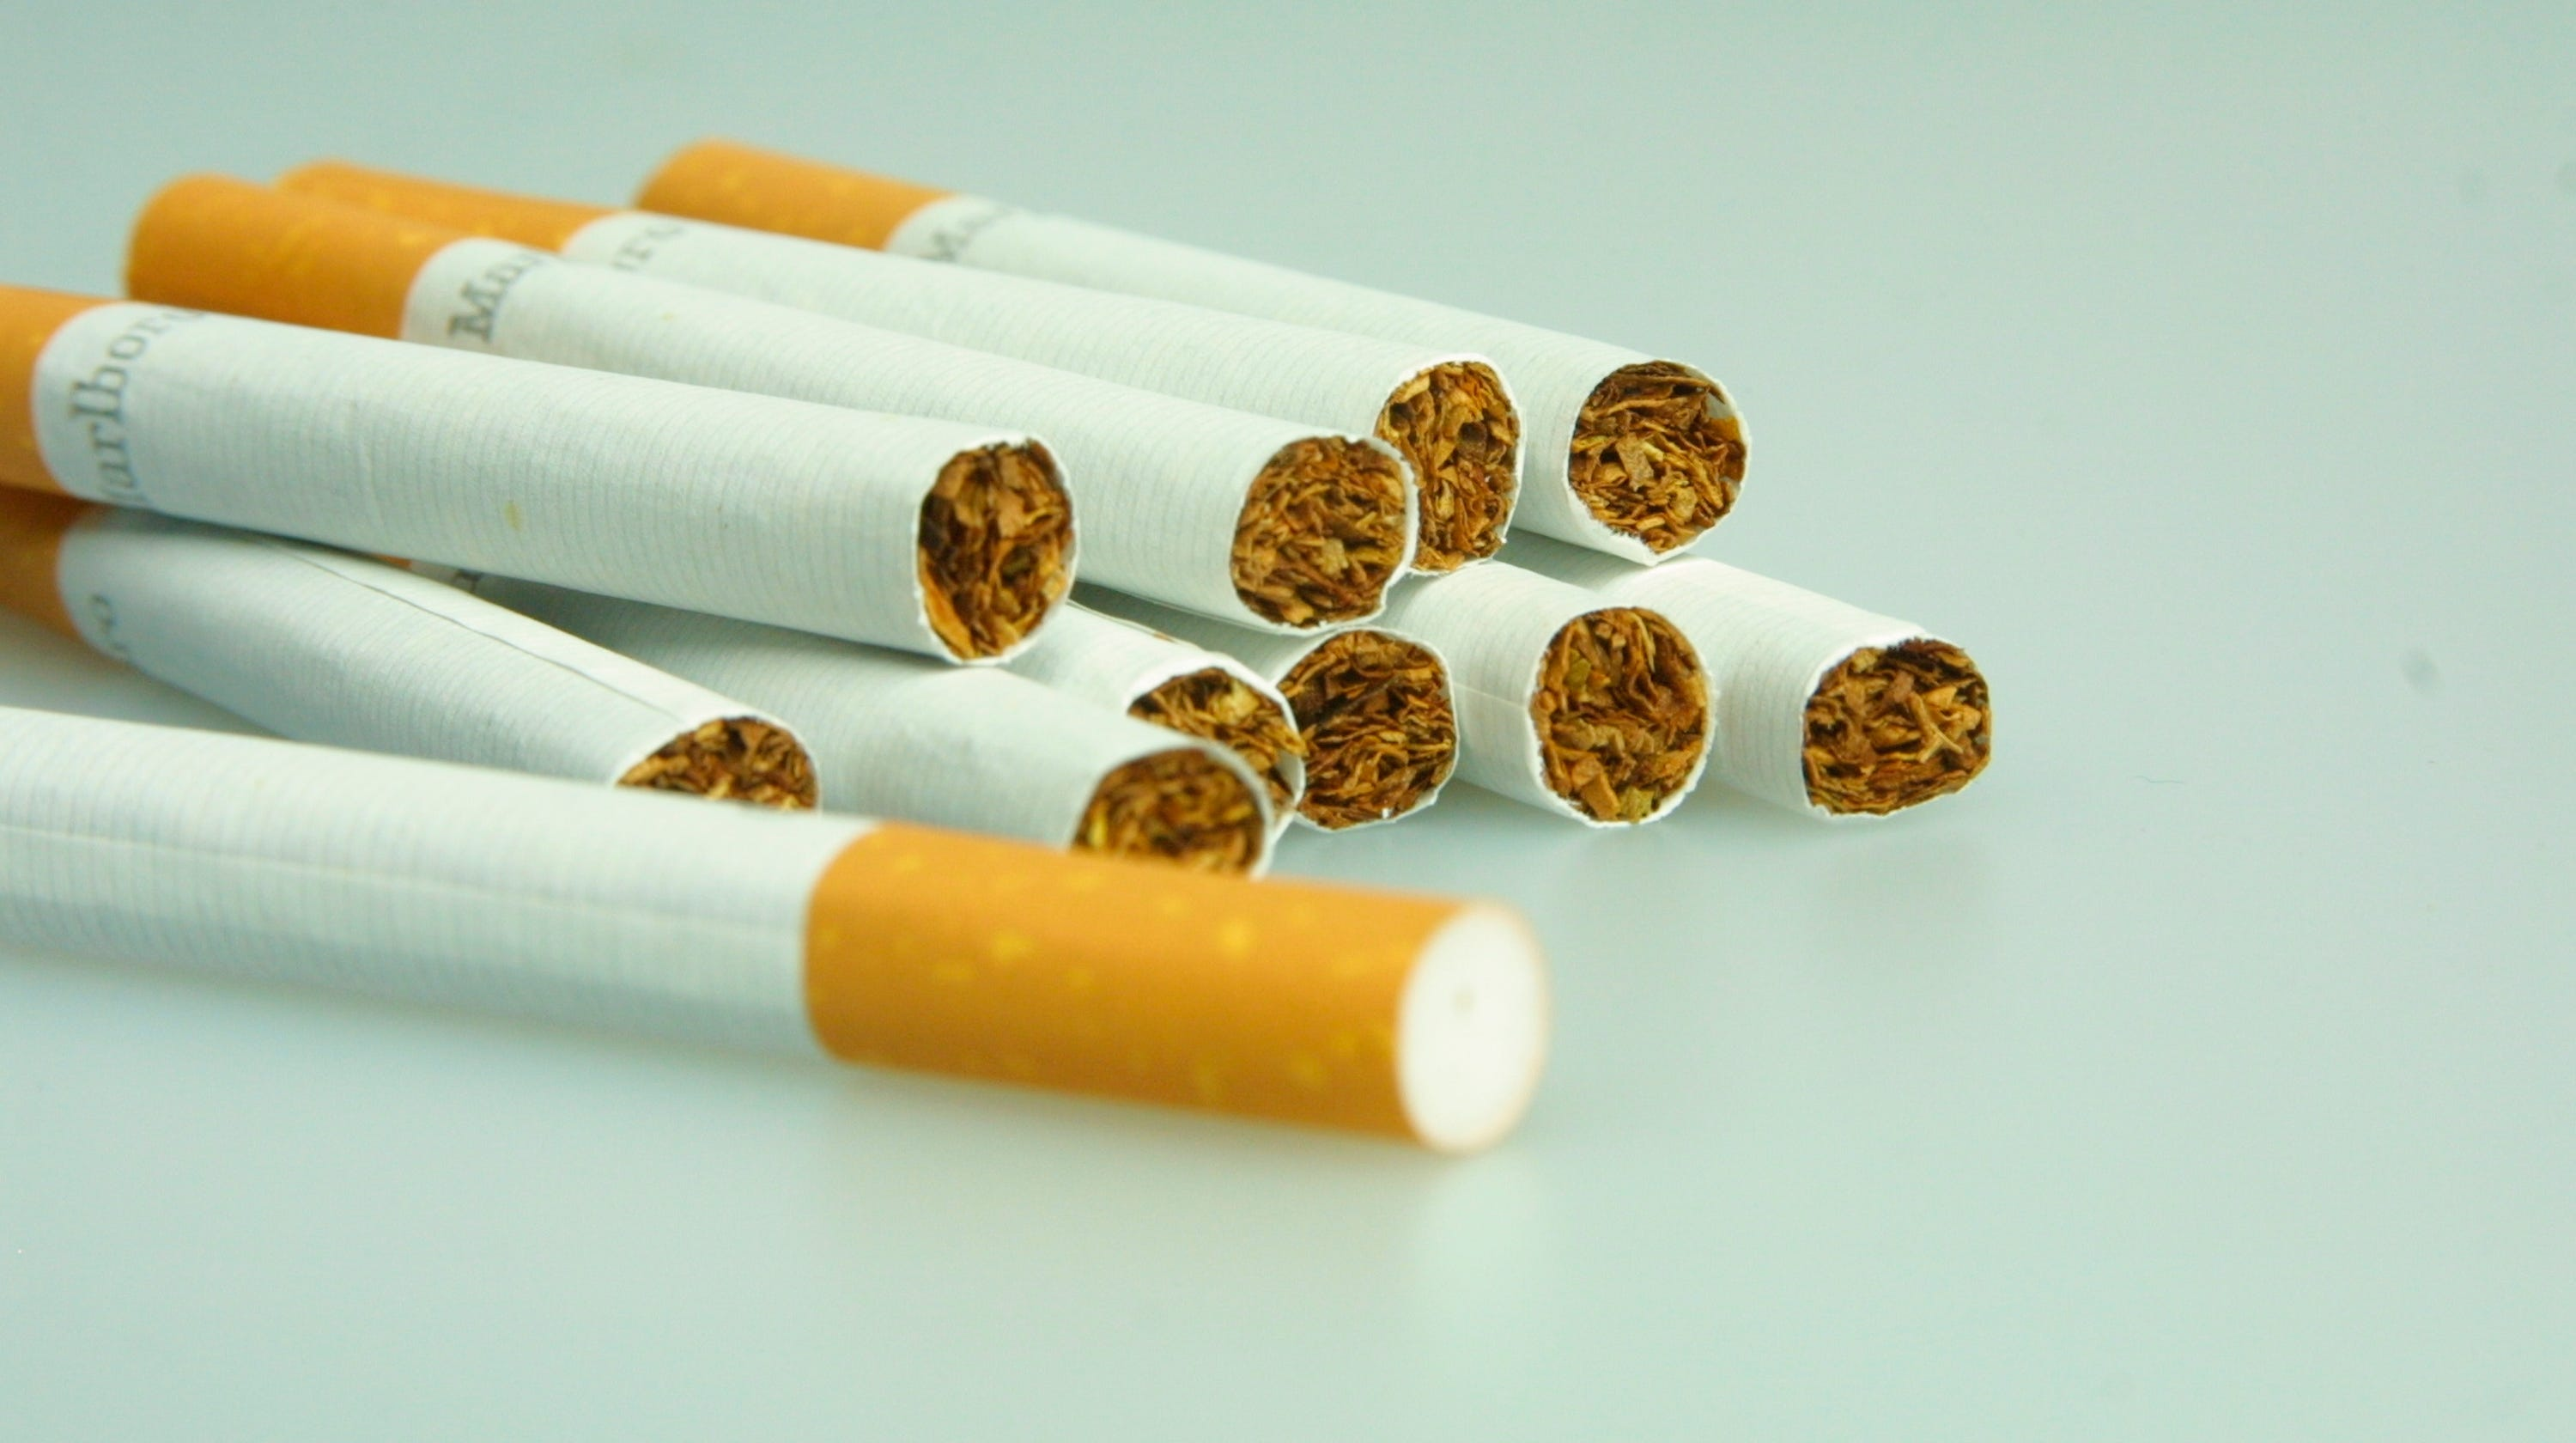 Raising the smoking age to 21 would reduce addiction and